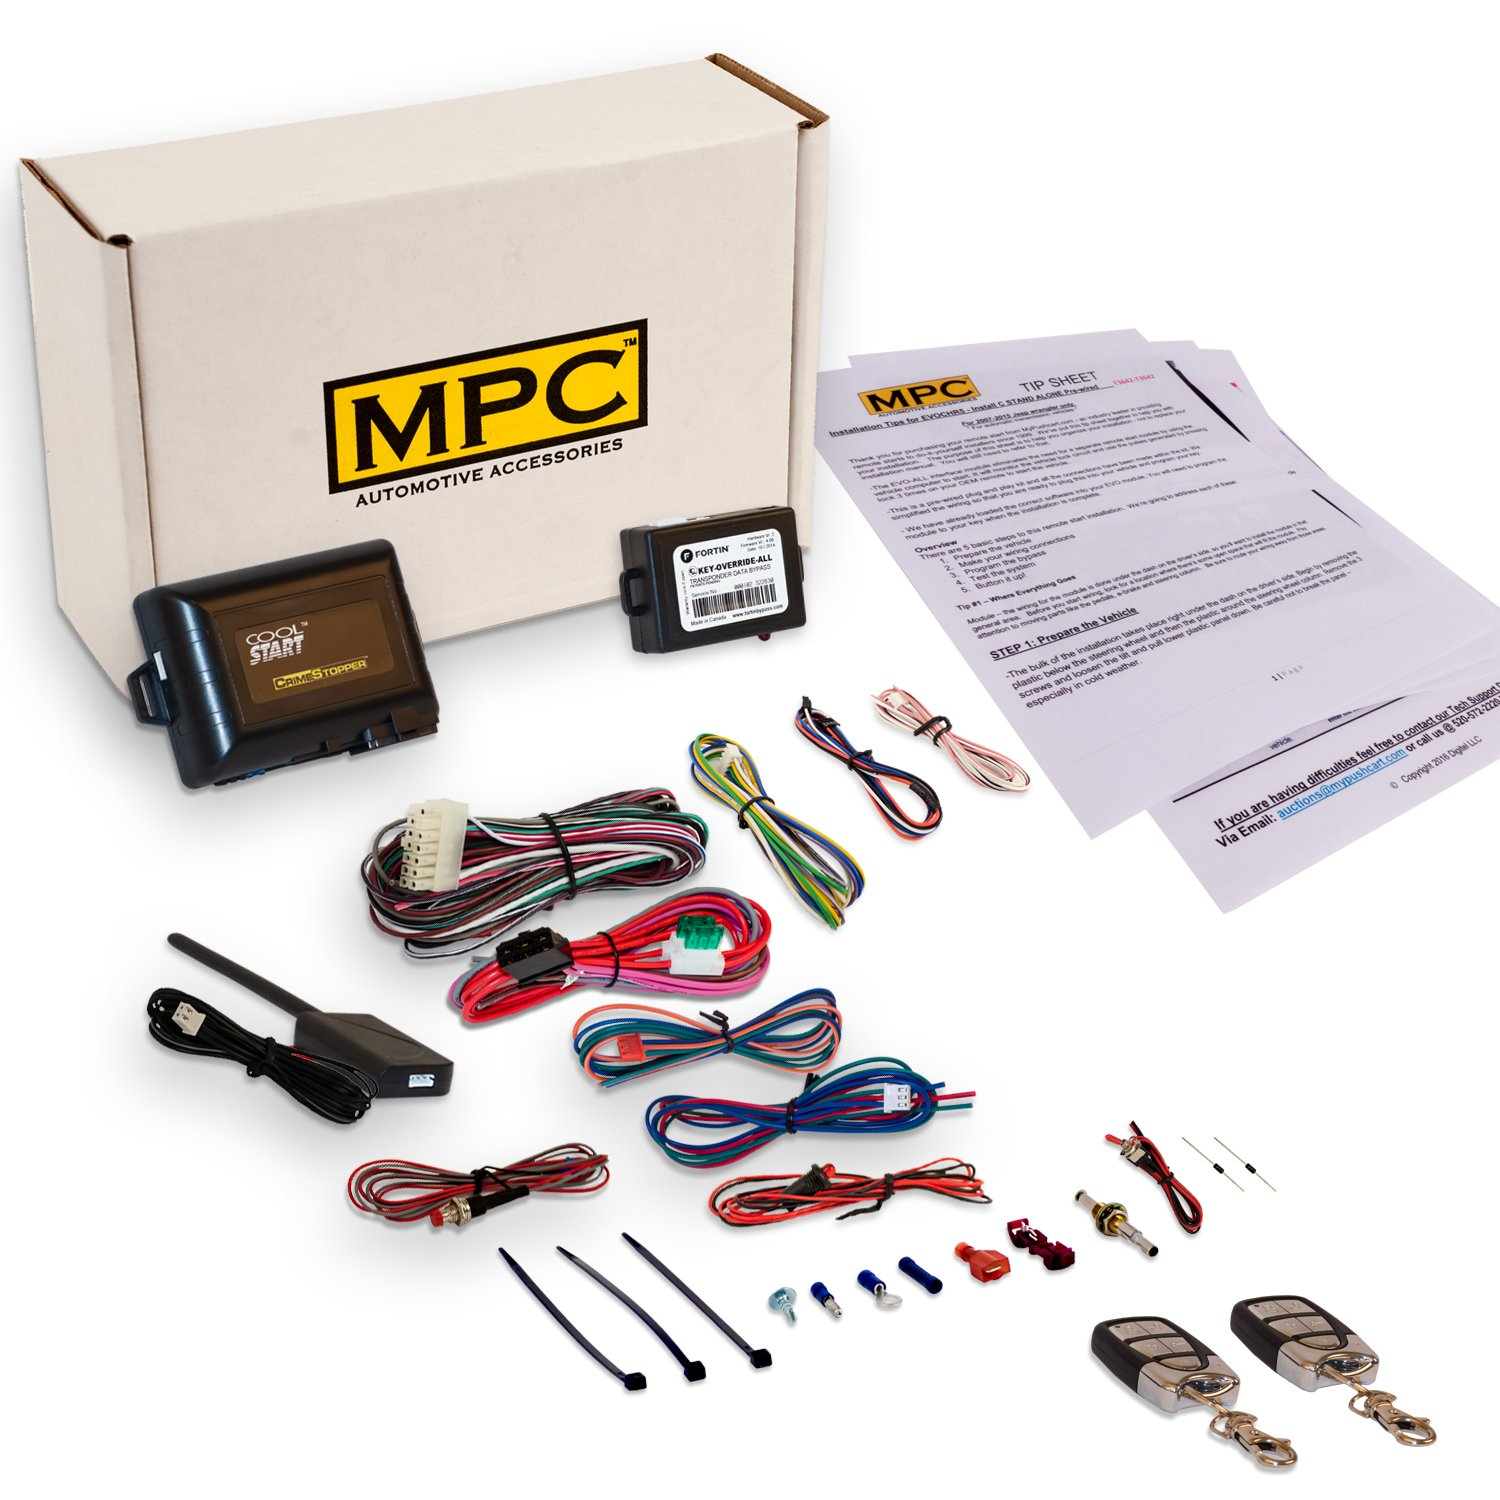 Complete Remote Start & Keyless Entry Kit Fits Select Toyota & Lexus Vehicles [1997-2005]